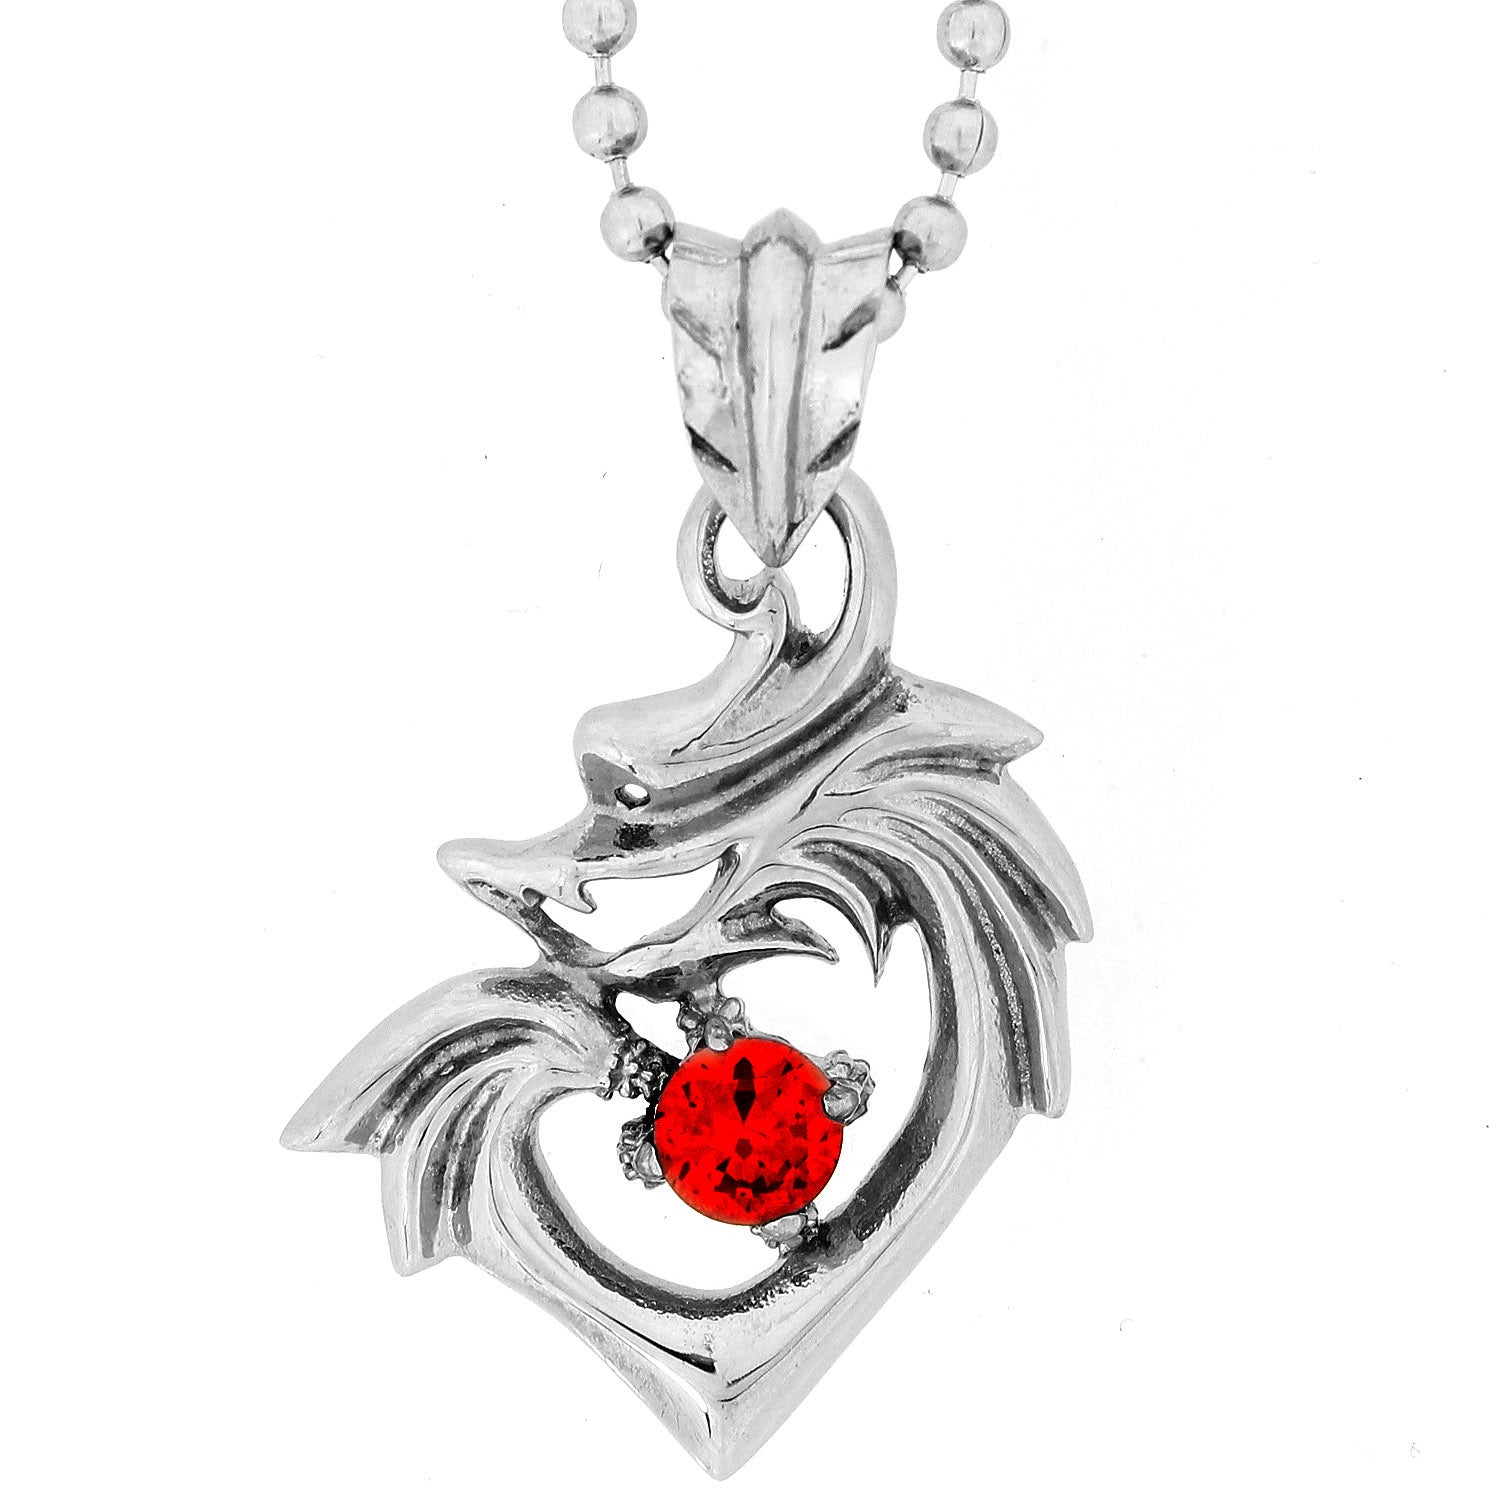 Shop stainless steel mens red cubic zirconia dragon heart necklace shop stainless steel mens red cubic zirconia dragon heart necklace free shipping on orders over 45 overstock 7884270 mozeypictures Gallery